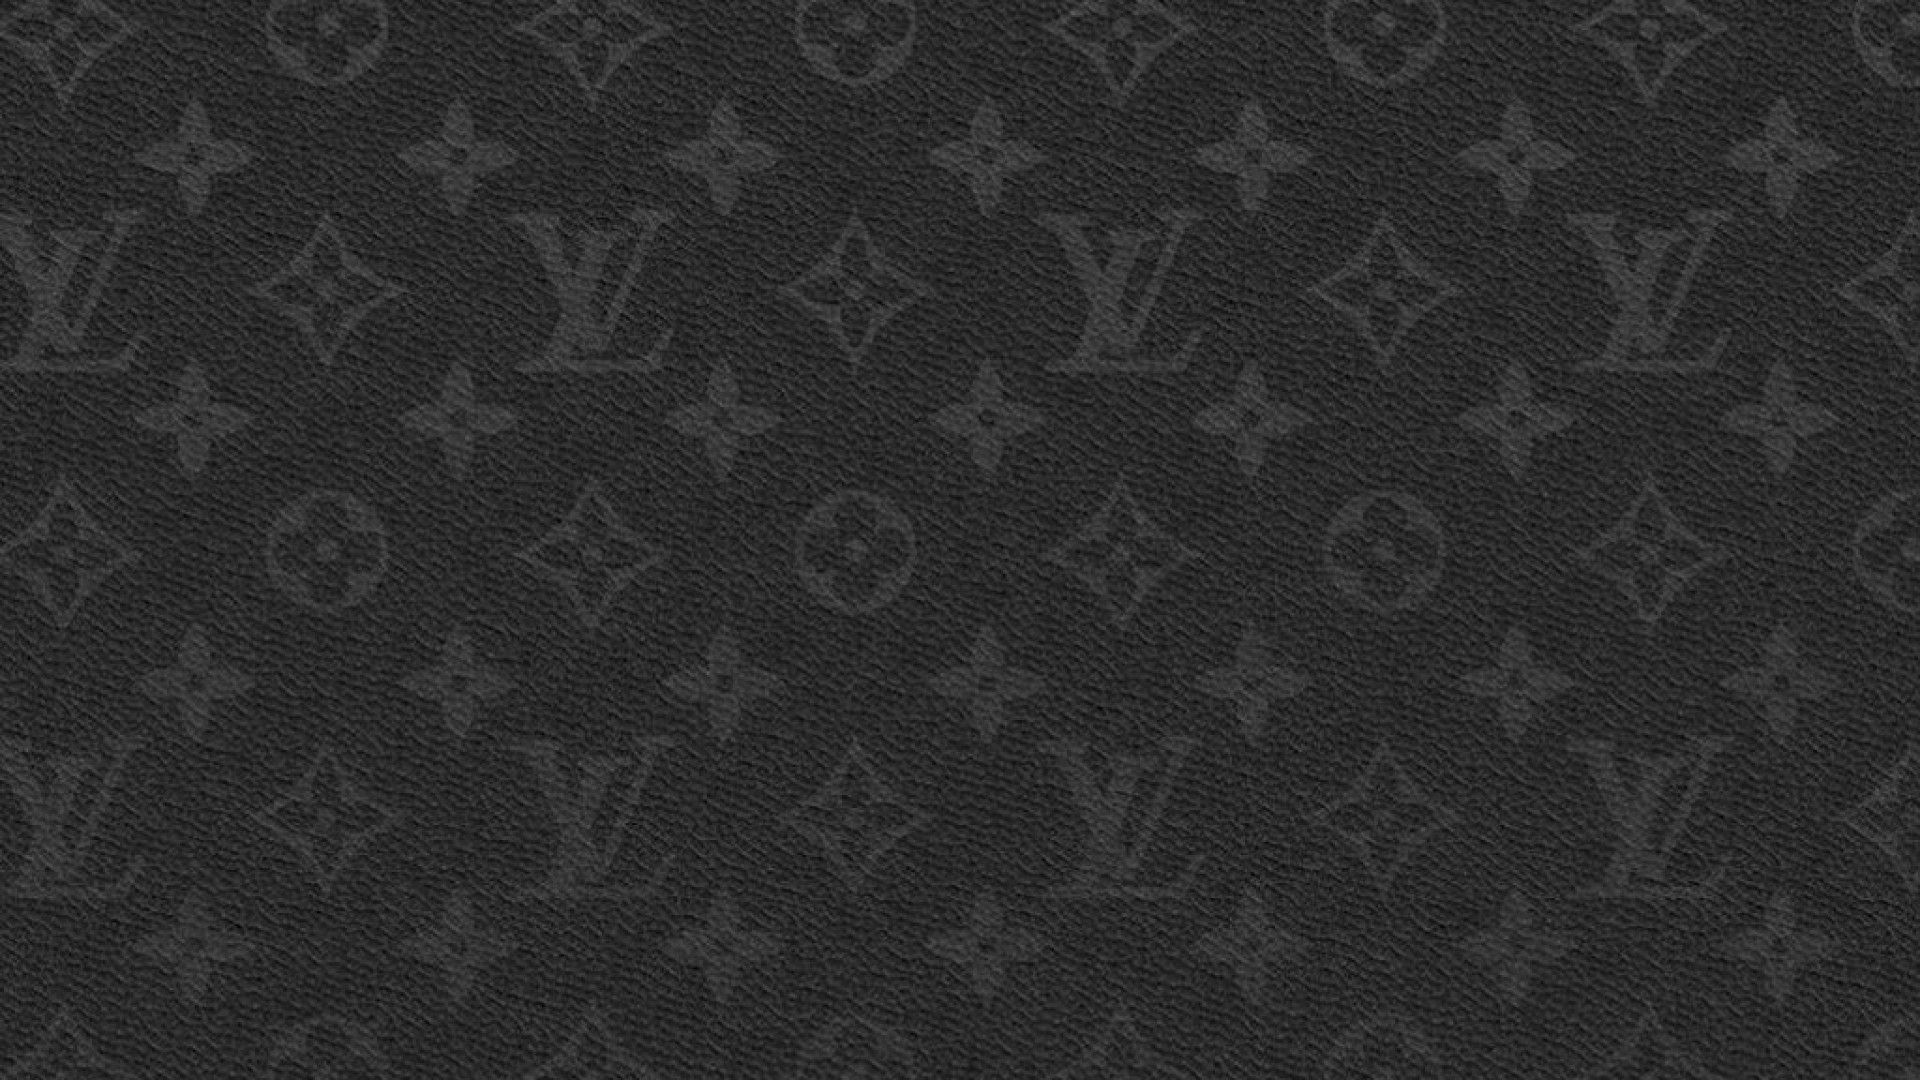 Louis Vuitton Wallpaper Black